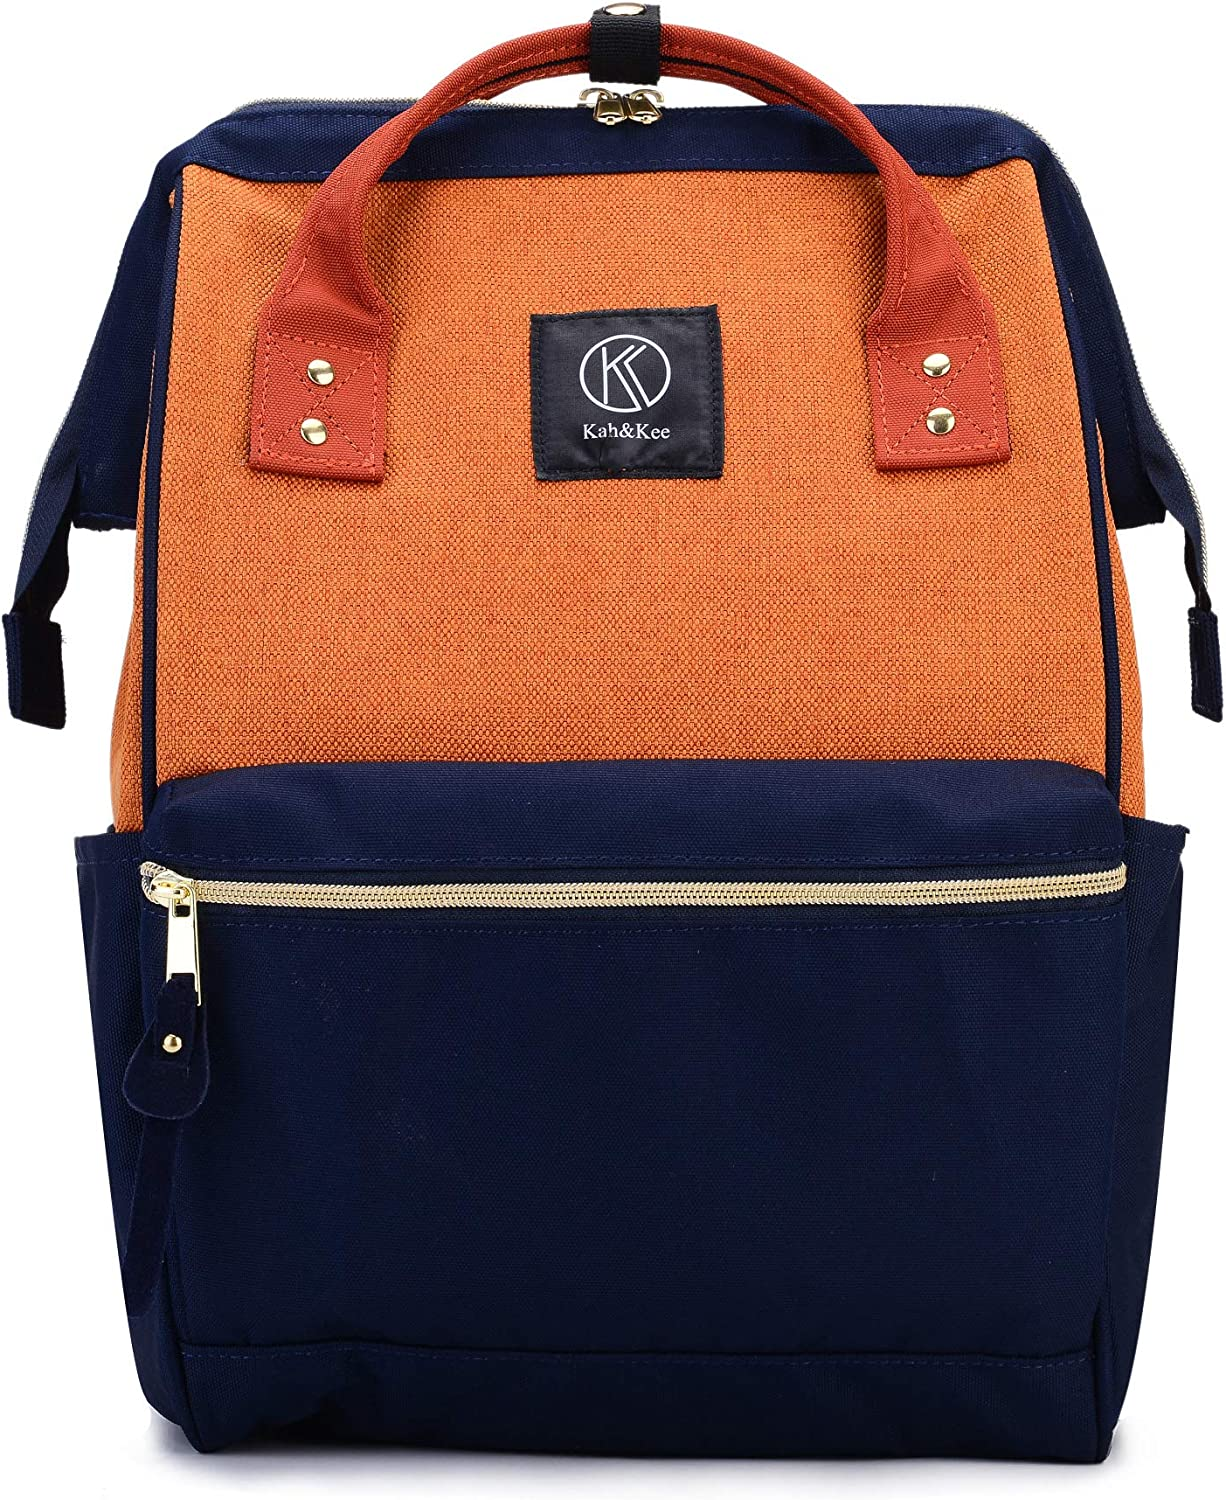 Kah&Kee Polyester Travel Backpack Functional Anti-theft School Laptop for Women Men (Linen Orange, Large)